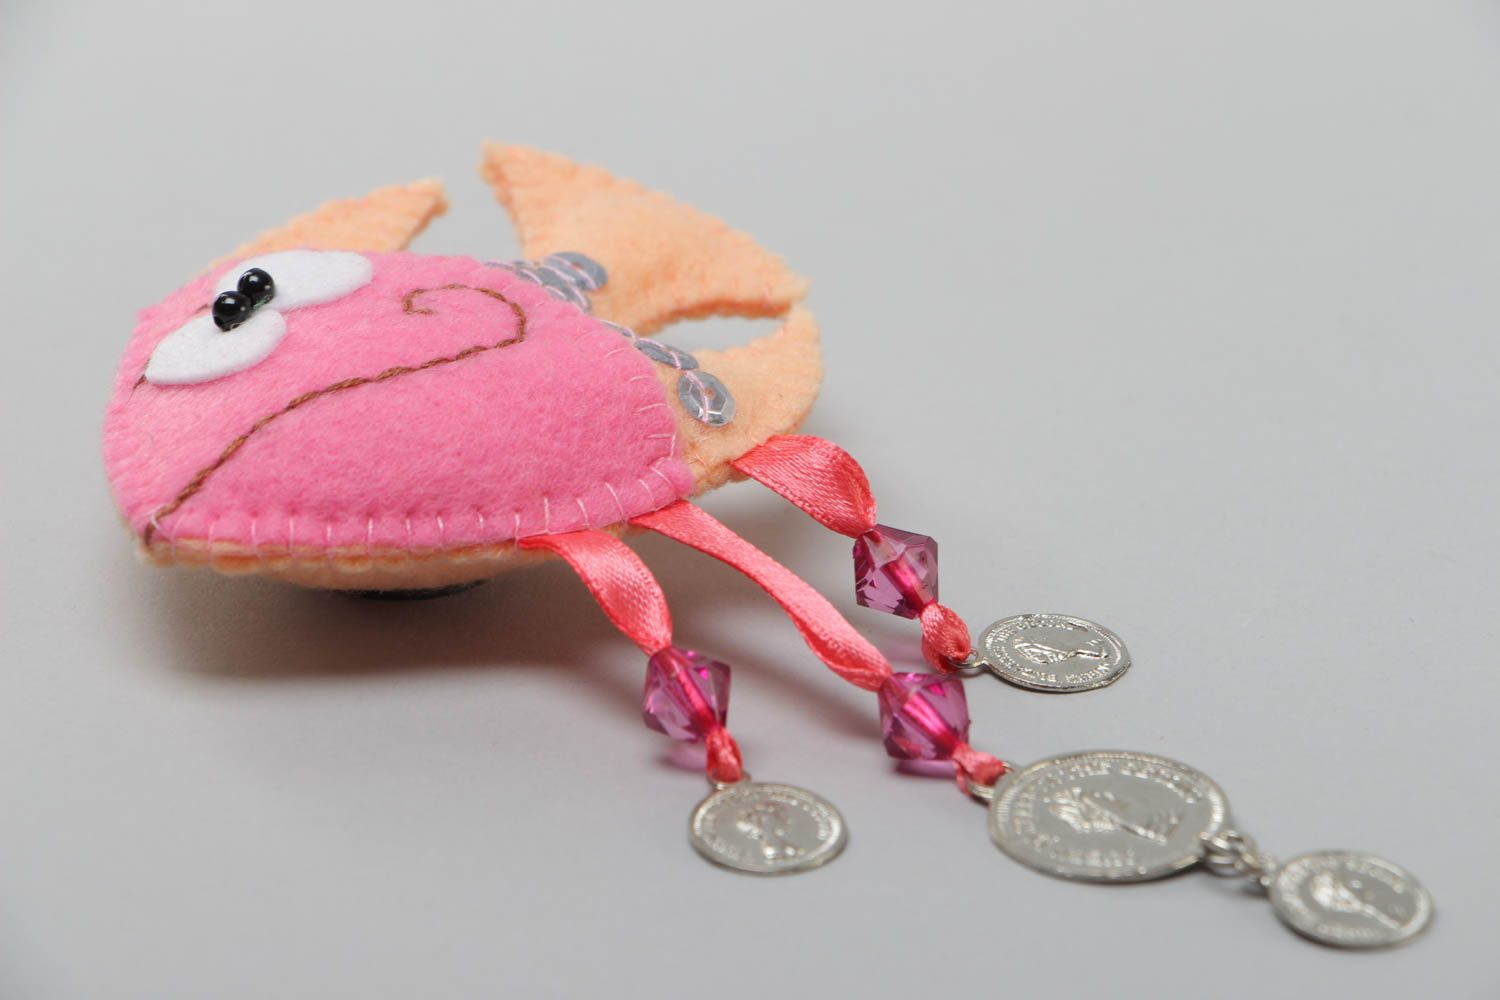 Handmade soft toy fridge magnet sewn of felt with beads and coins charms Fish photo 3